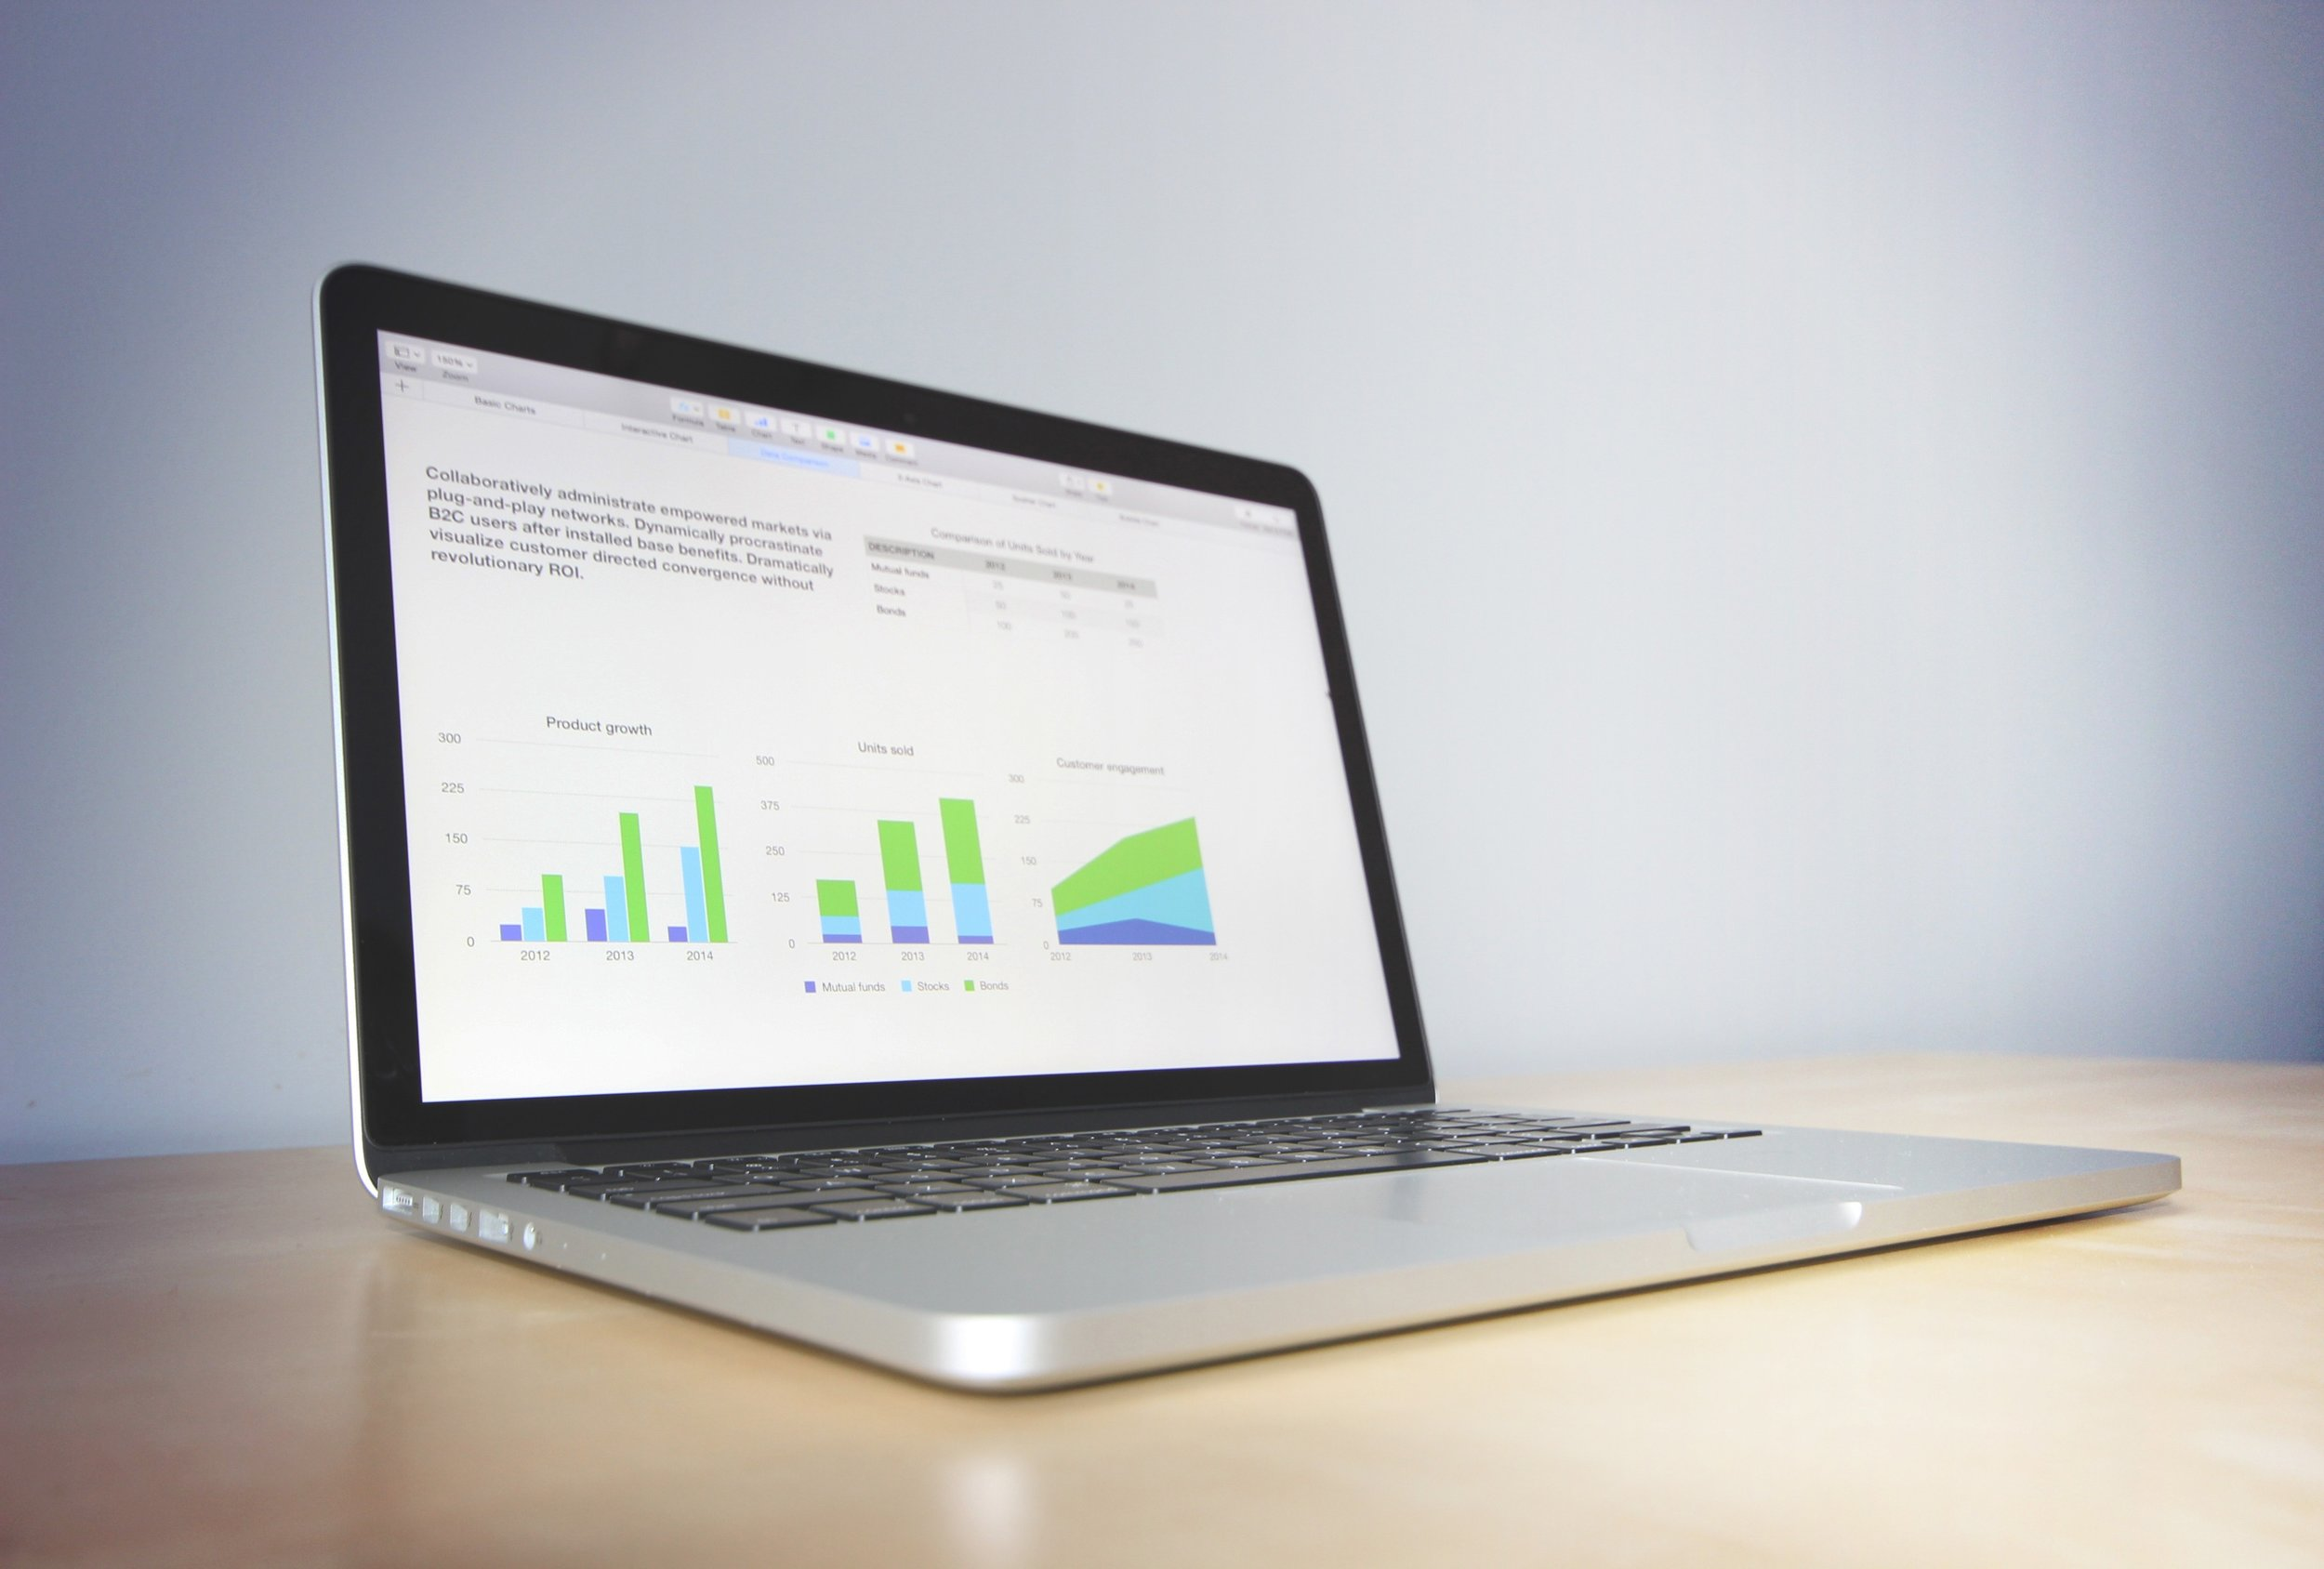 Google Analytics Guide - The definitive guide on setting up Google Analytics and learning how to create actionable insights from data.